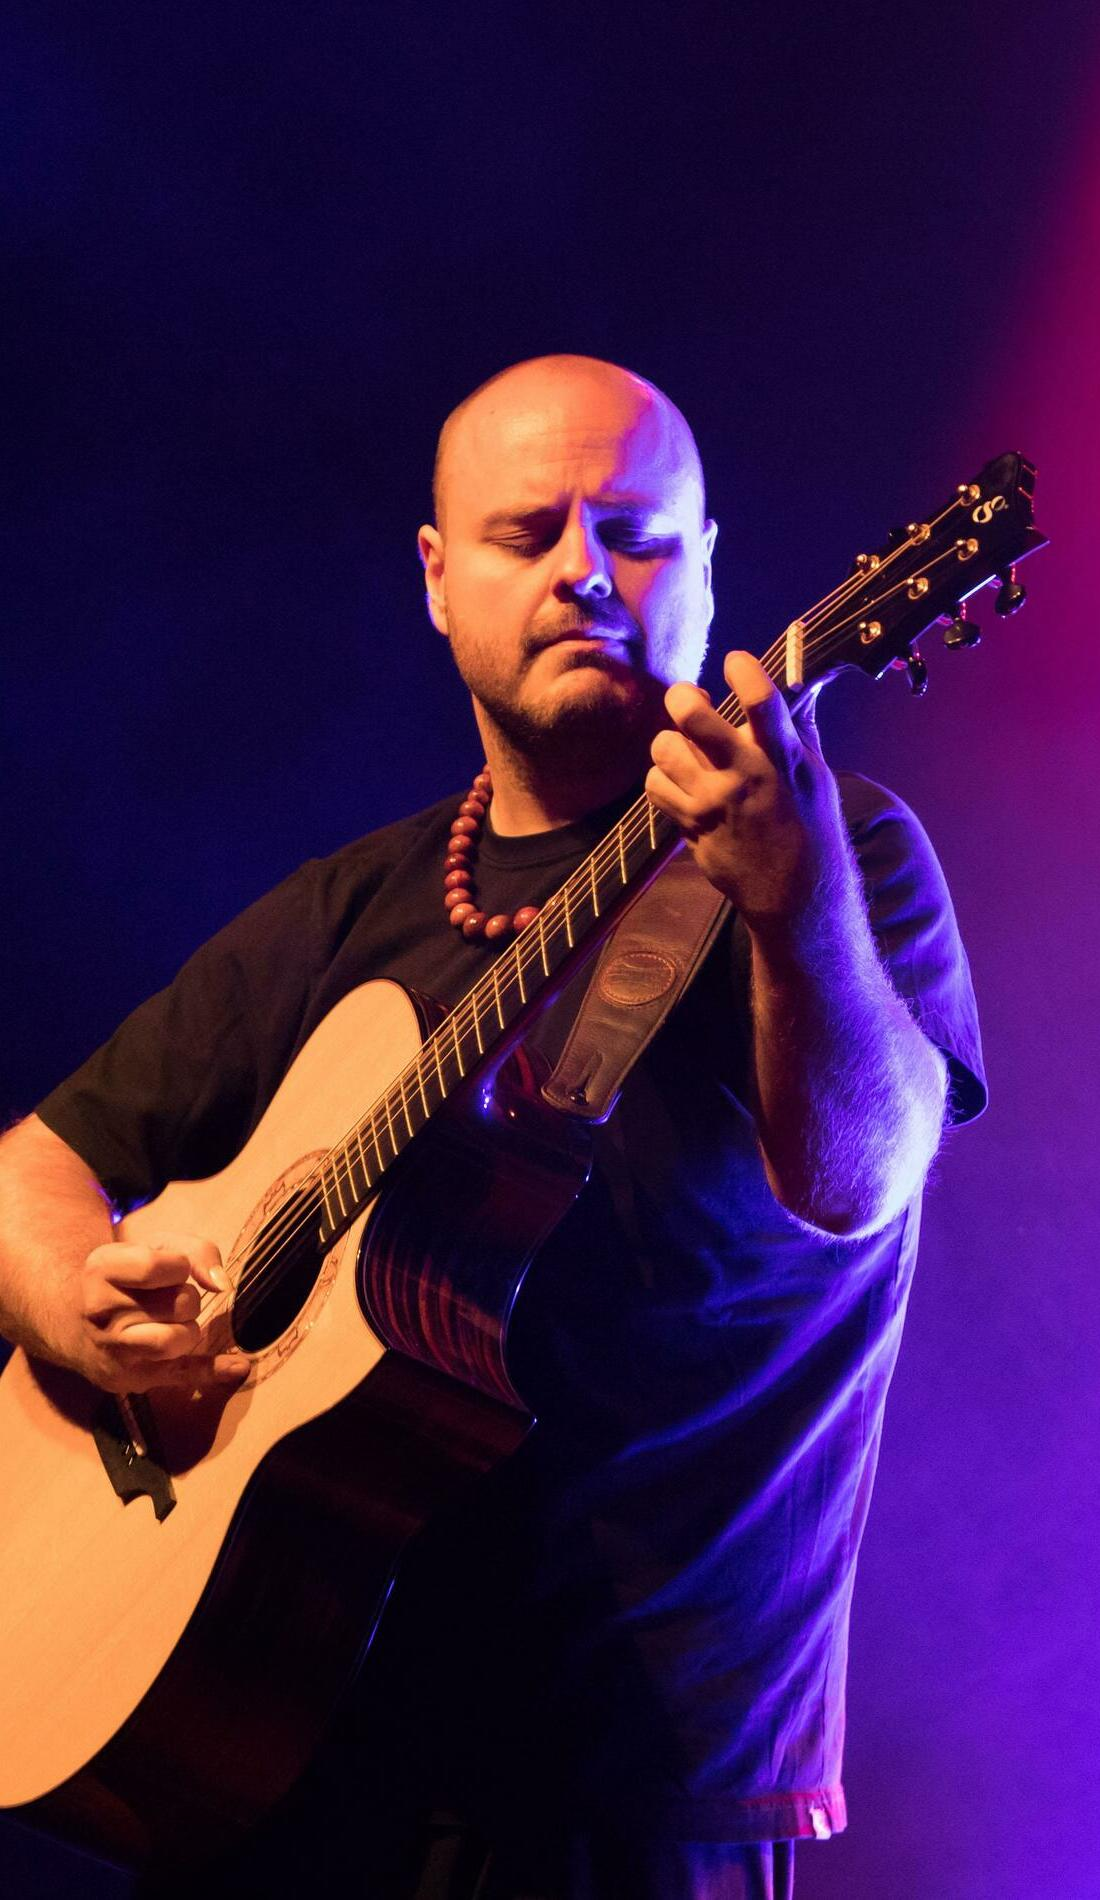 A Andy McKee live event